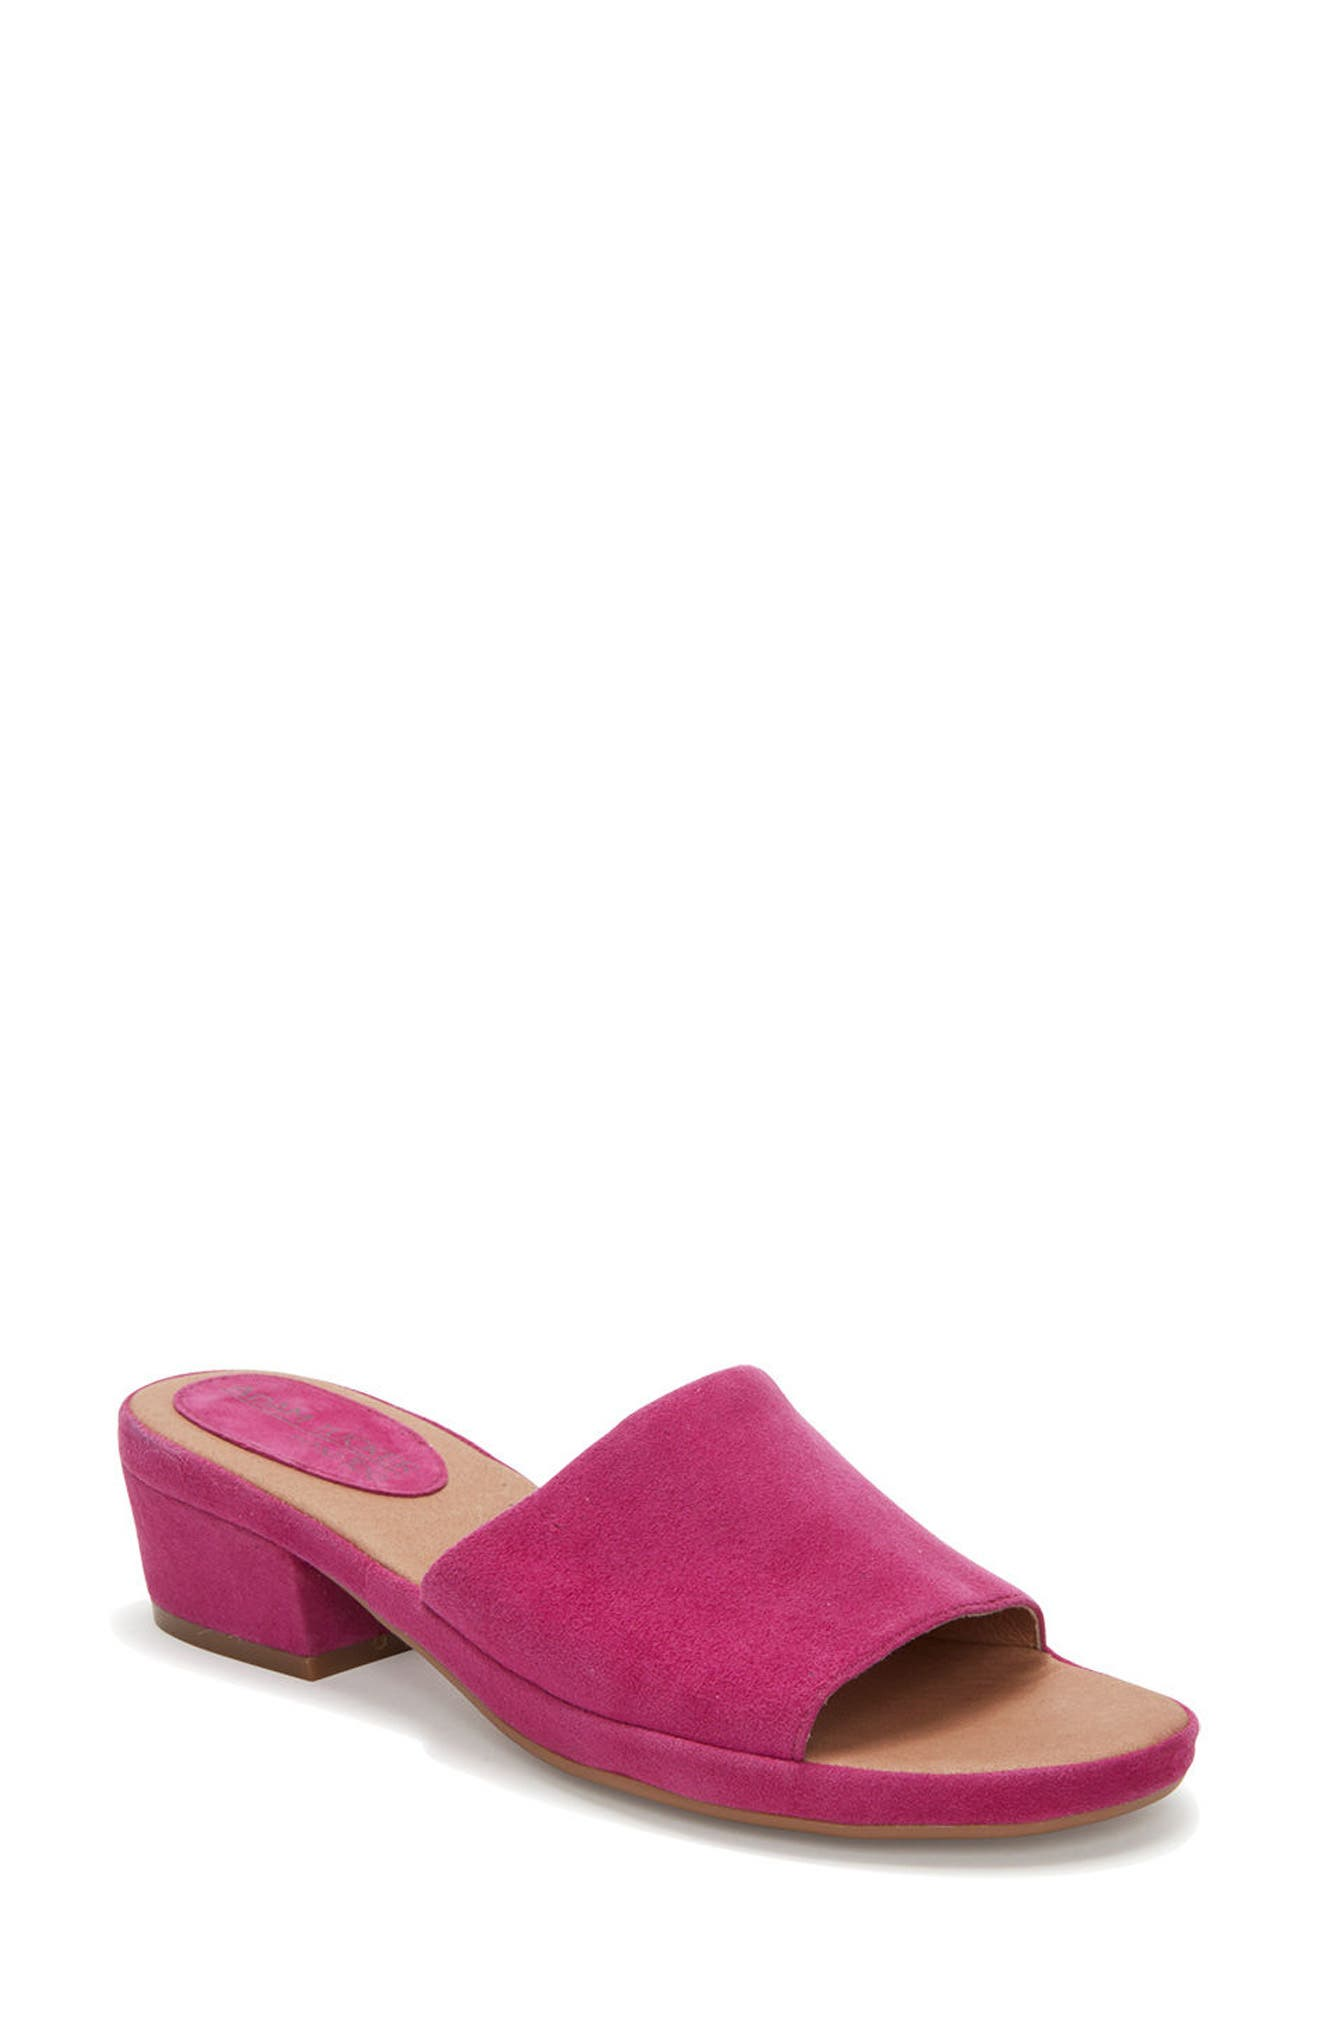 Adam Tucker Yolo Sandal,                             Main thumbnail 1, color,                             Fuchsia Suede